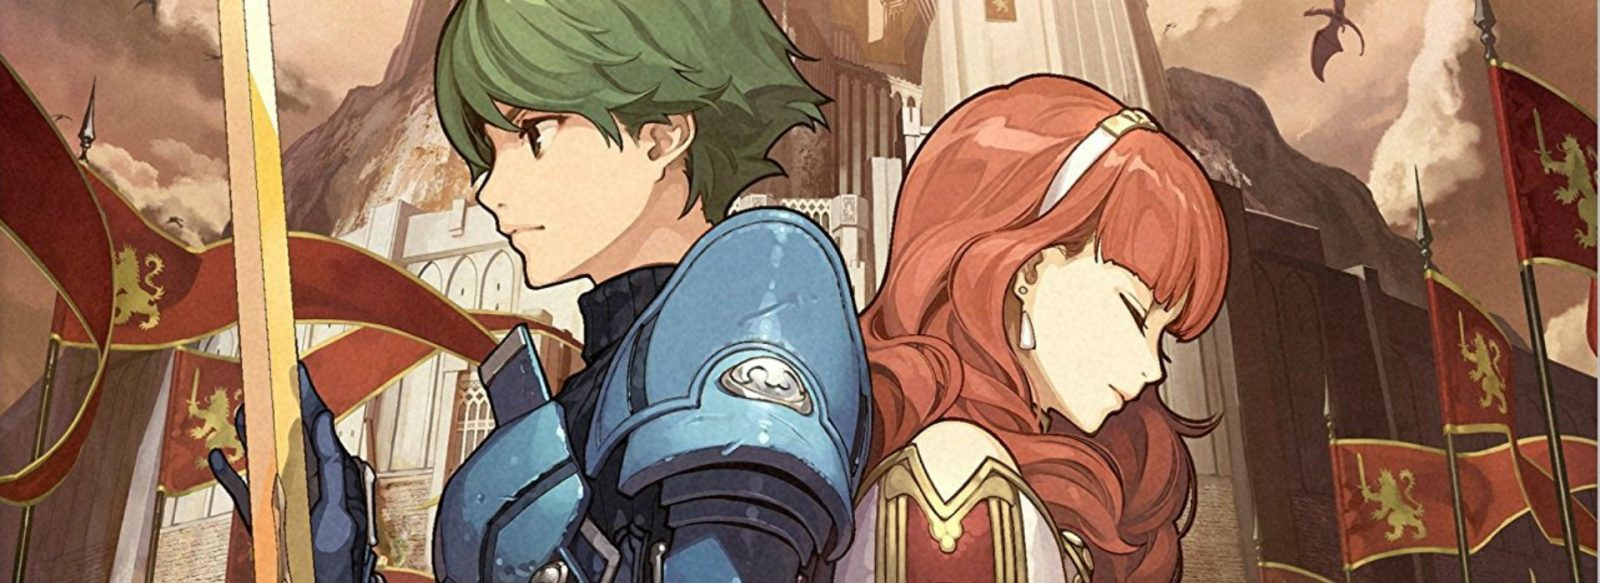 fire-emblem-echoes-shadows-of-valentia-banner